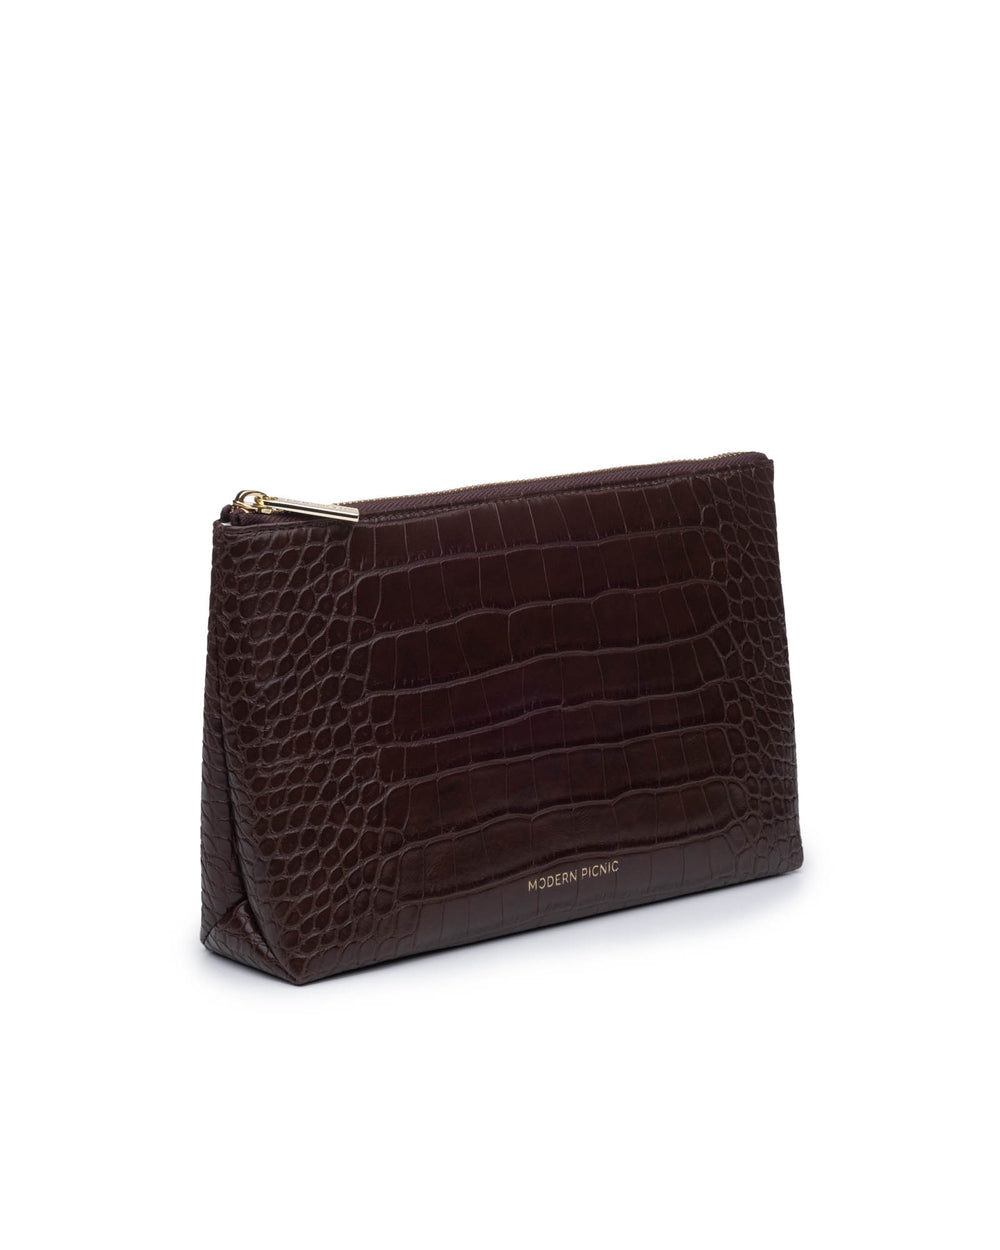 color:Dark Brown Crocodile